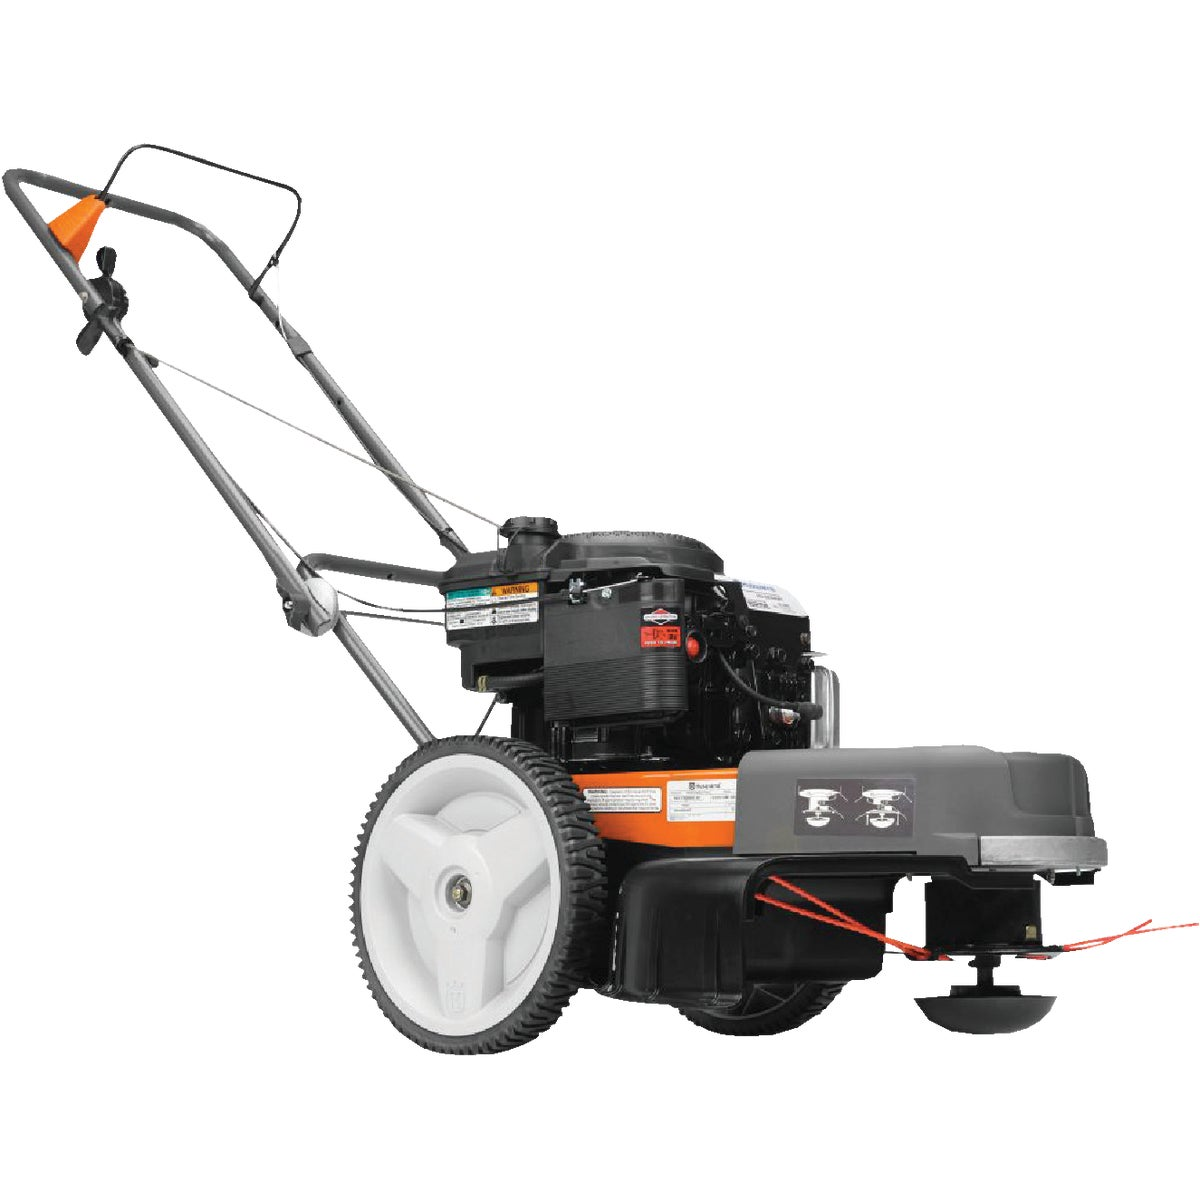 "22"" HIGH WHEELED TRIMMER - 961730005 by Husqvarna Outdoor"